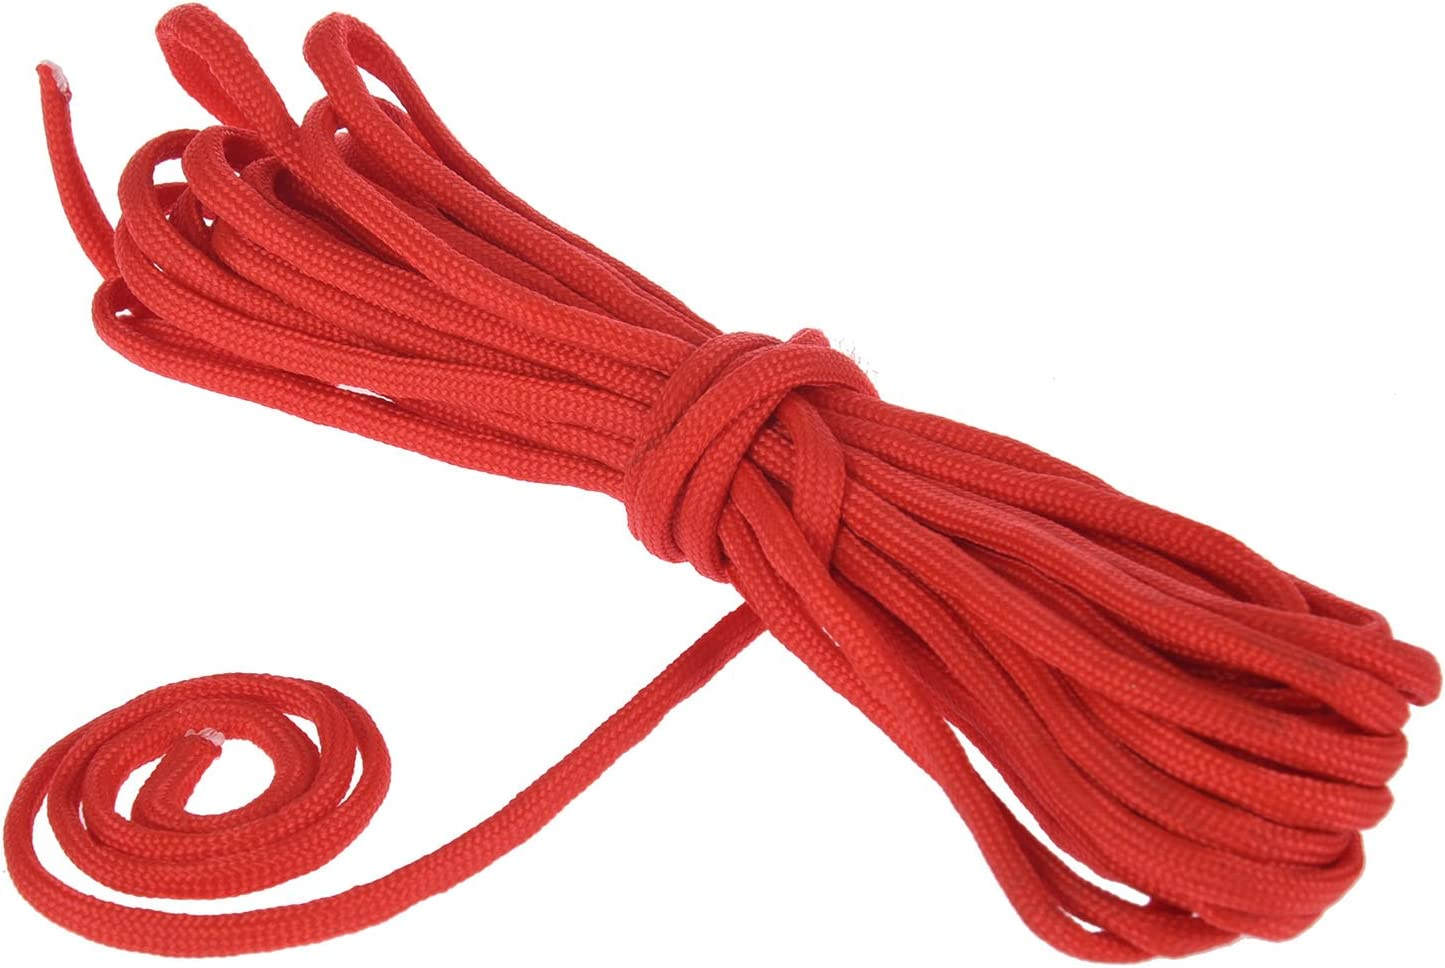 Jaimenalin Paracord 550 Parachute Rope 7 Core Strand for Climbing Camping Buckle Rope Red 25FT